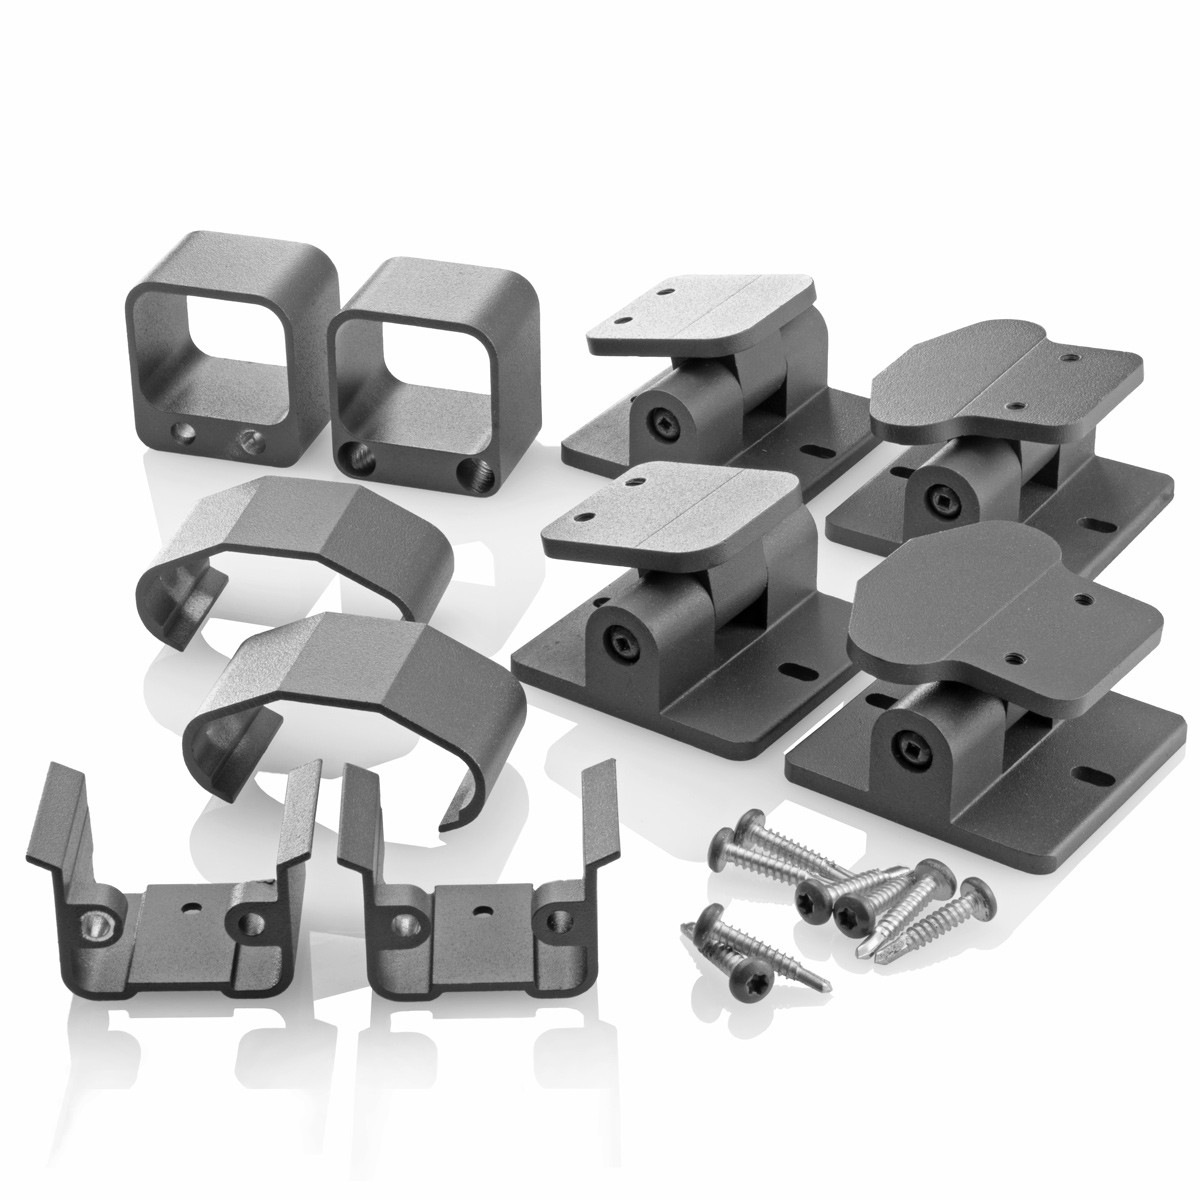 The Fixed Stair Bracket option for AFCO Pro provides a staircase angle between 32° and 36°- Textured Black